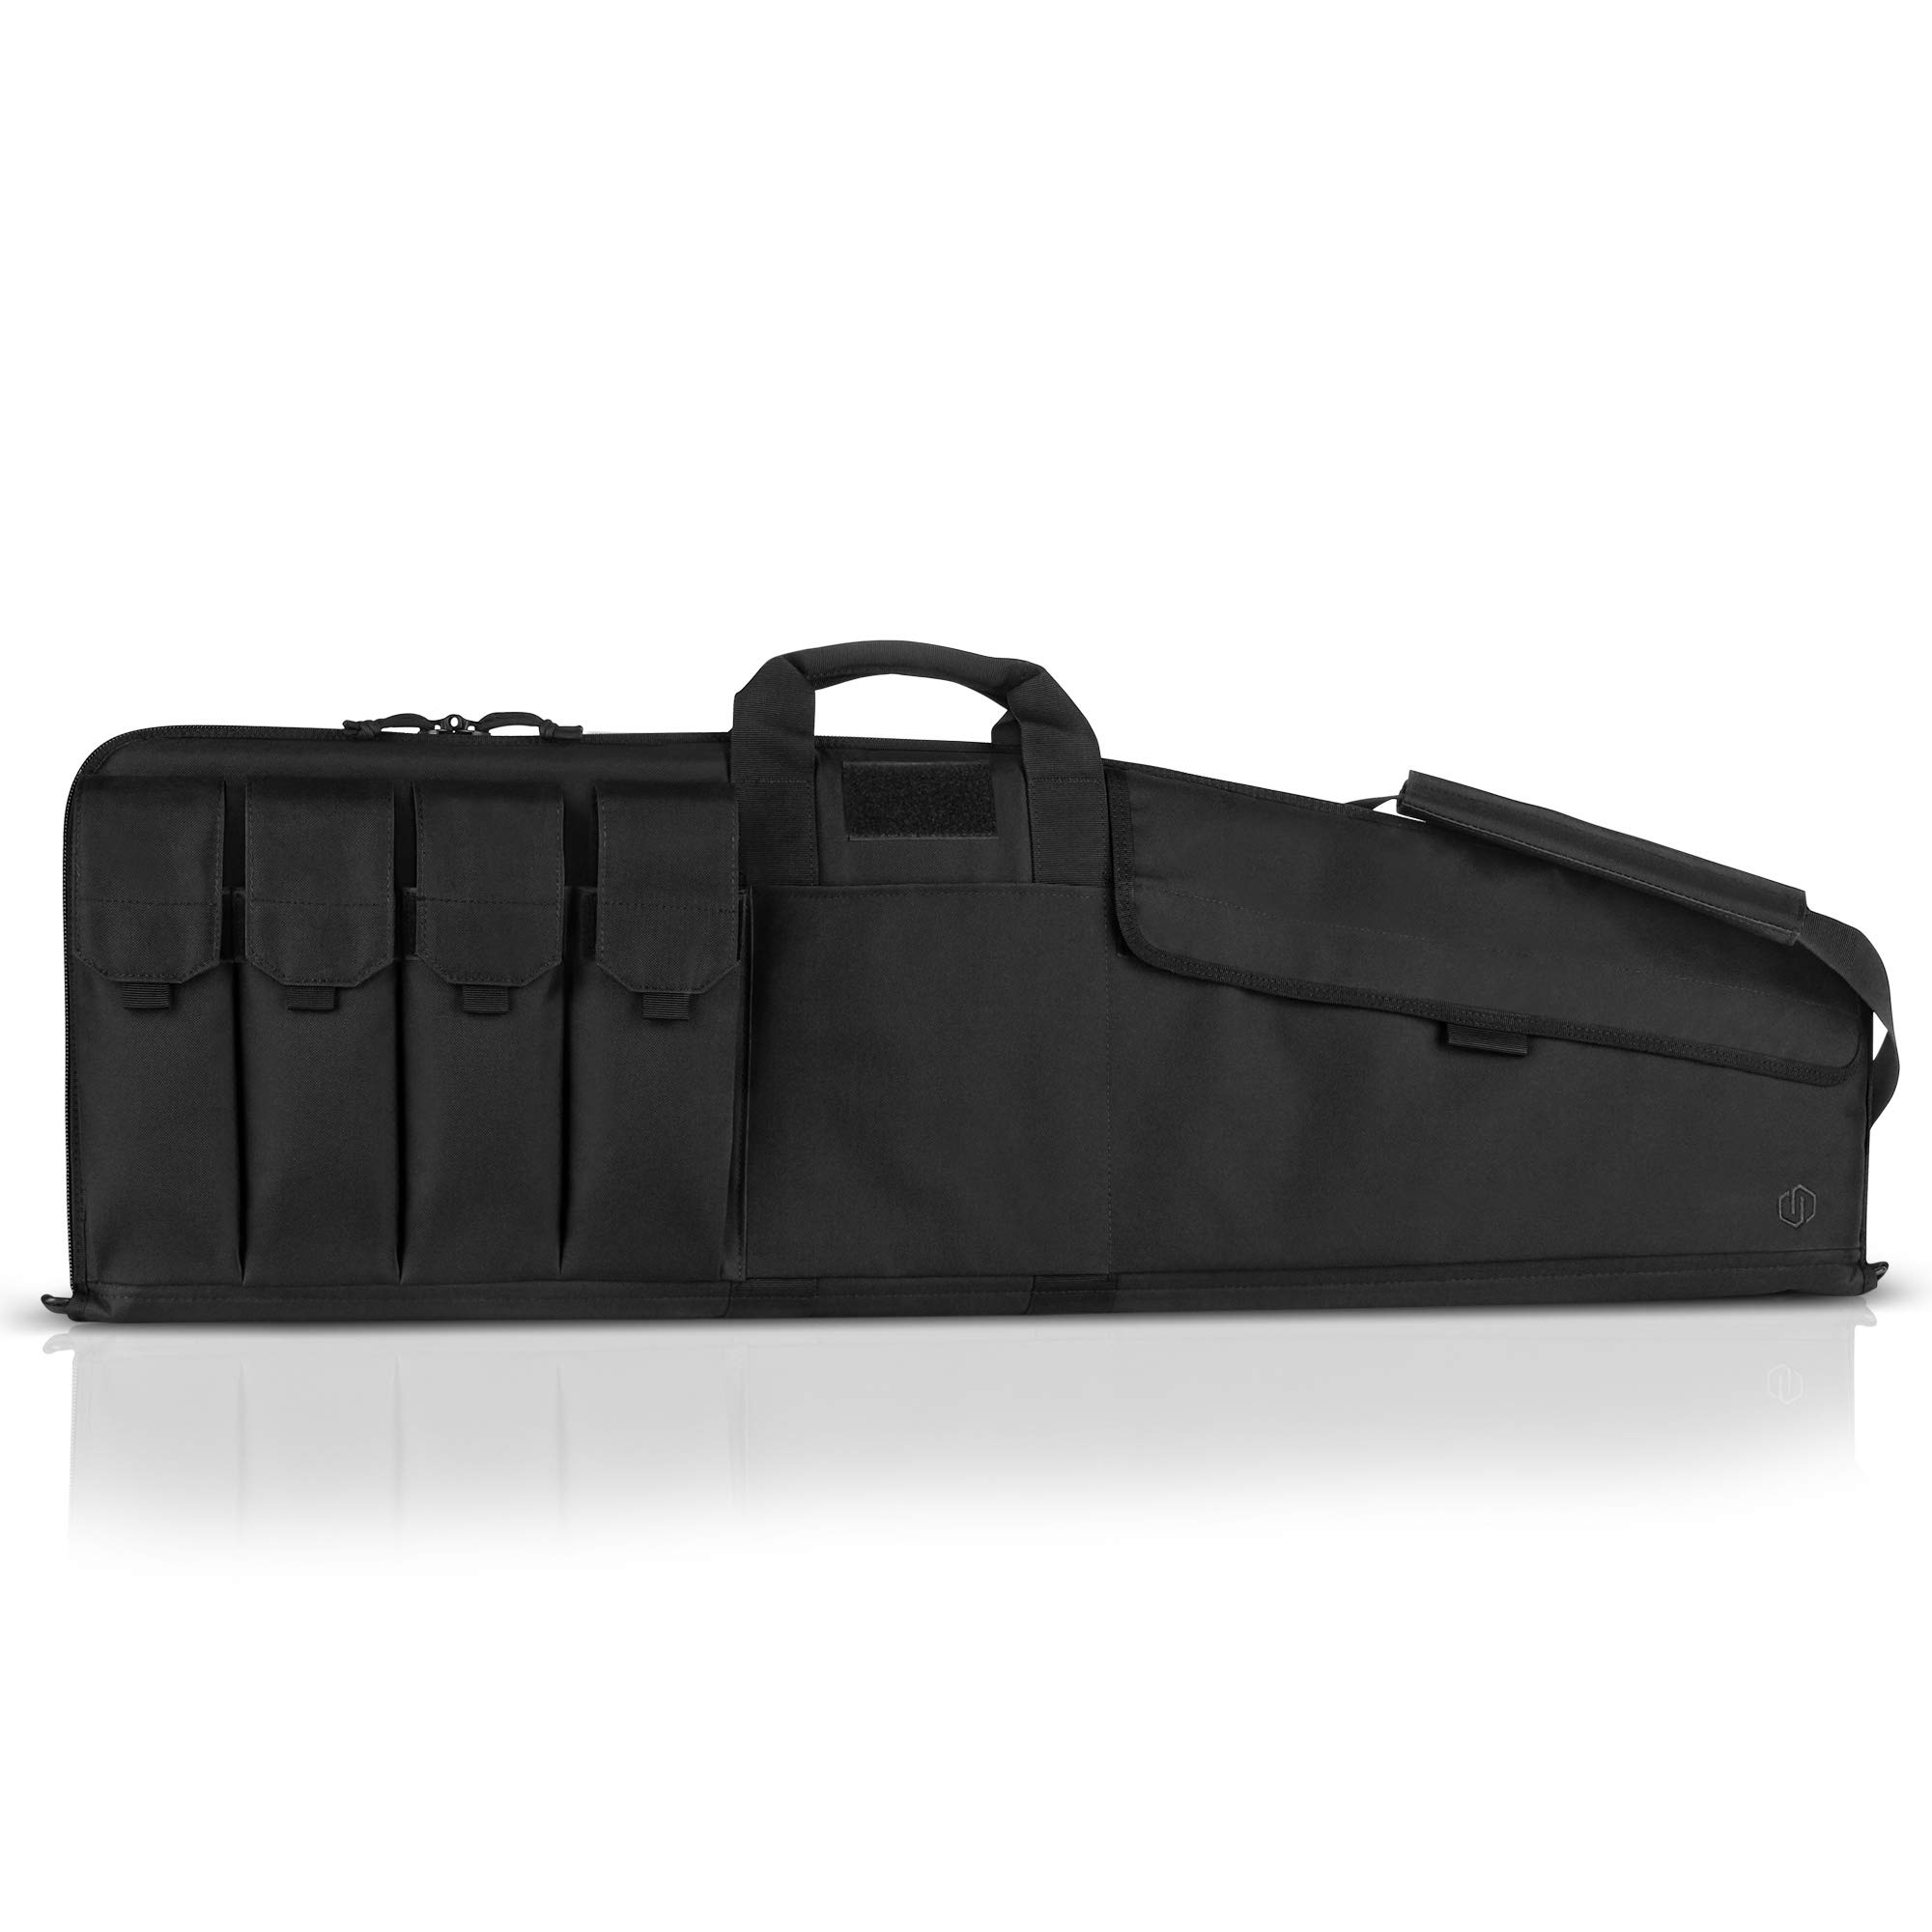 Savior Equipment The Patriot 46'' Single Rifle Gun Tactical Bag - Obsidian Black by Savior Equipment